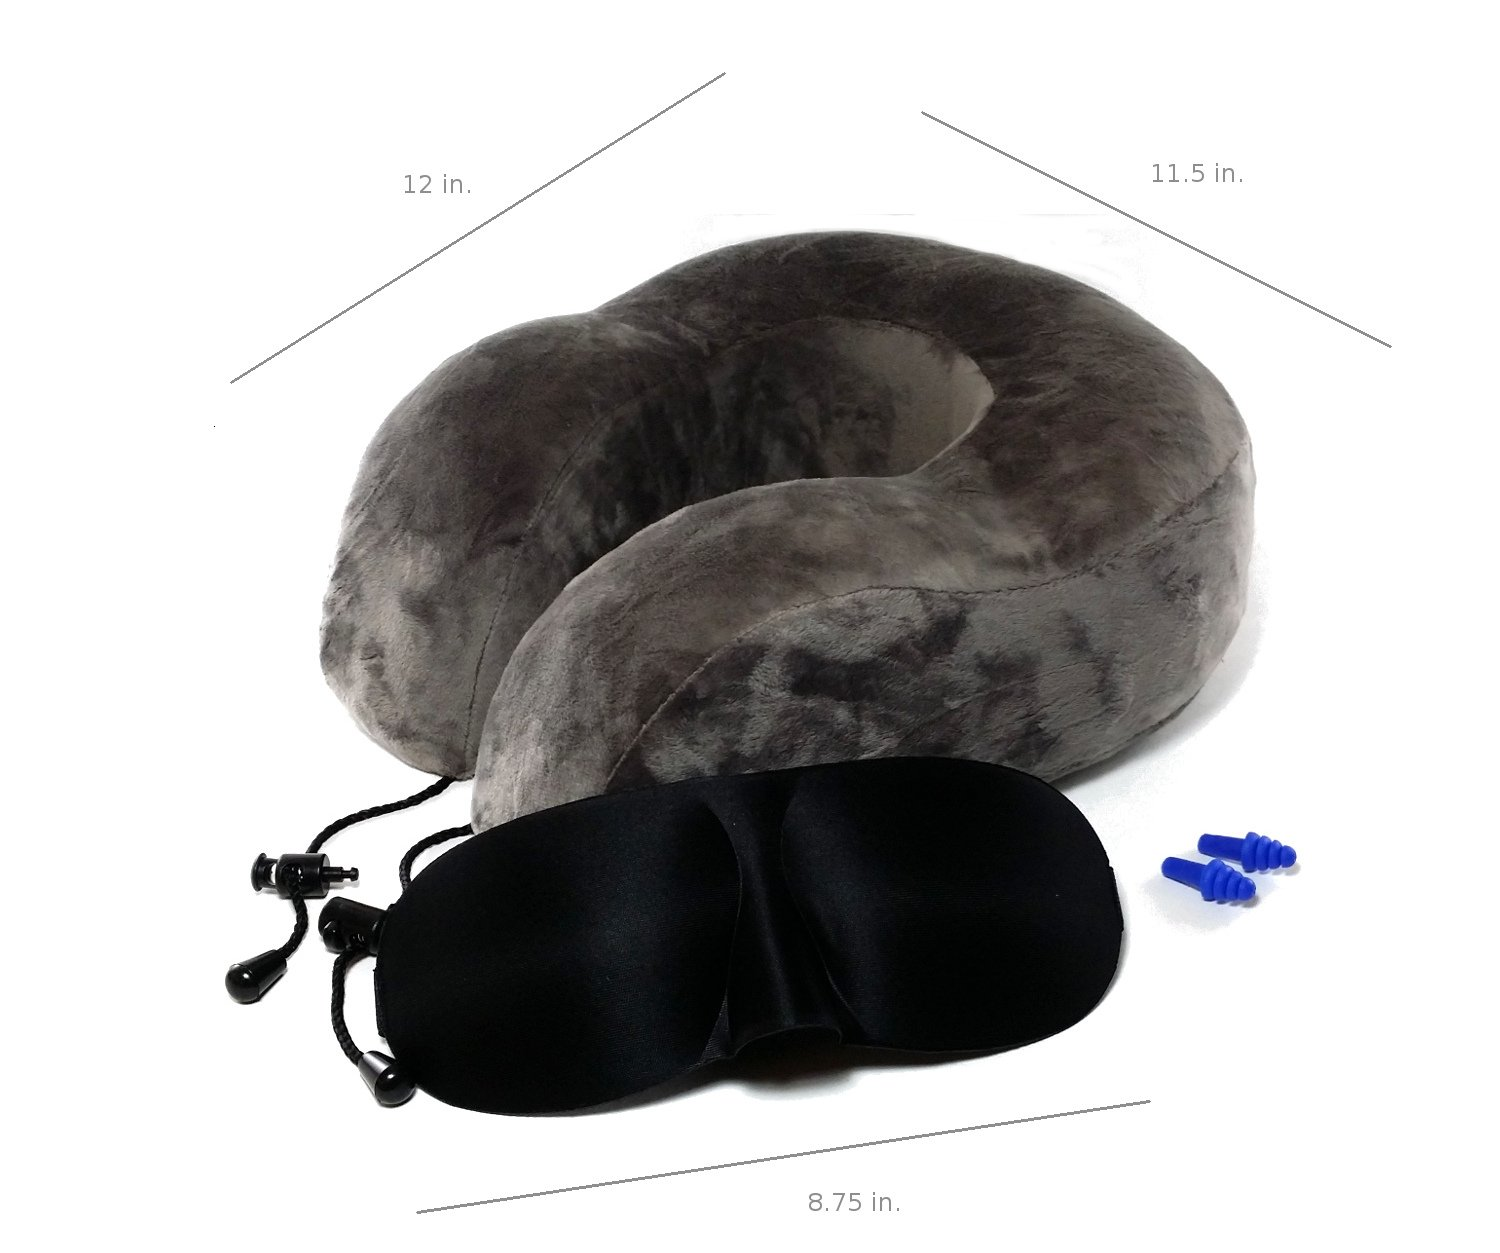 BucketList Central Nomad Premium Memory Foam Travel Neck Pillow with Bonus Sleep Mask and Ear Plugs Comfort and Support for Travel or at Home BLCNPB1605-P Gray